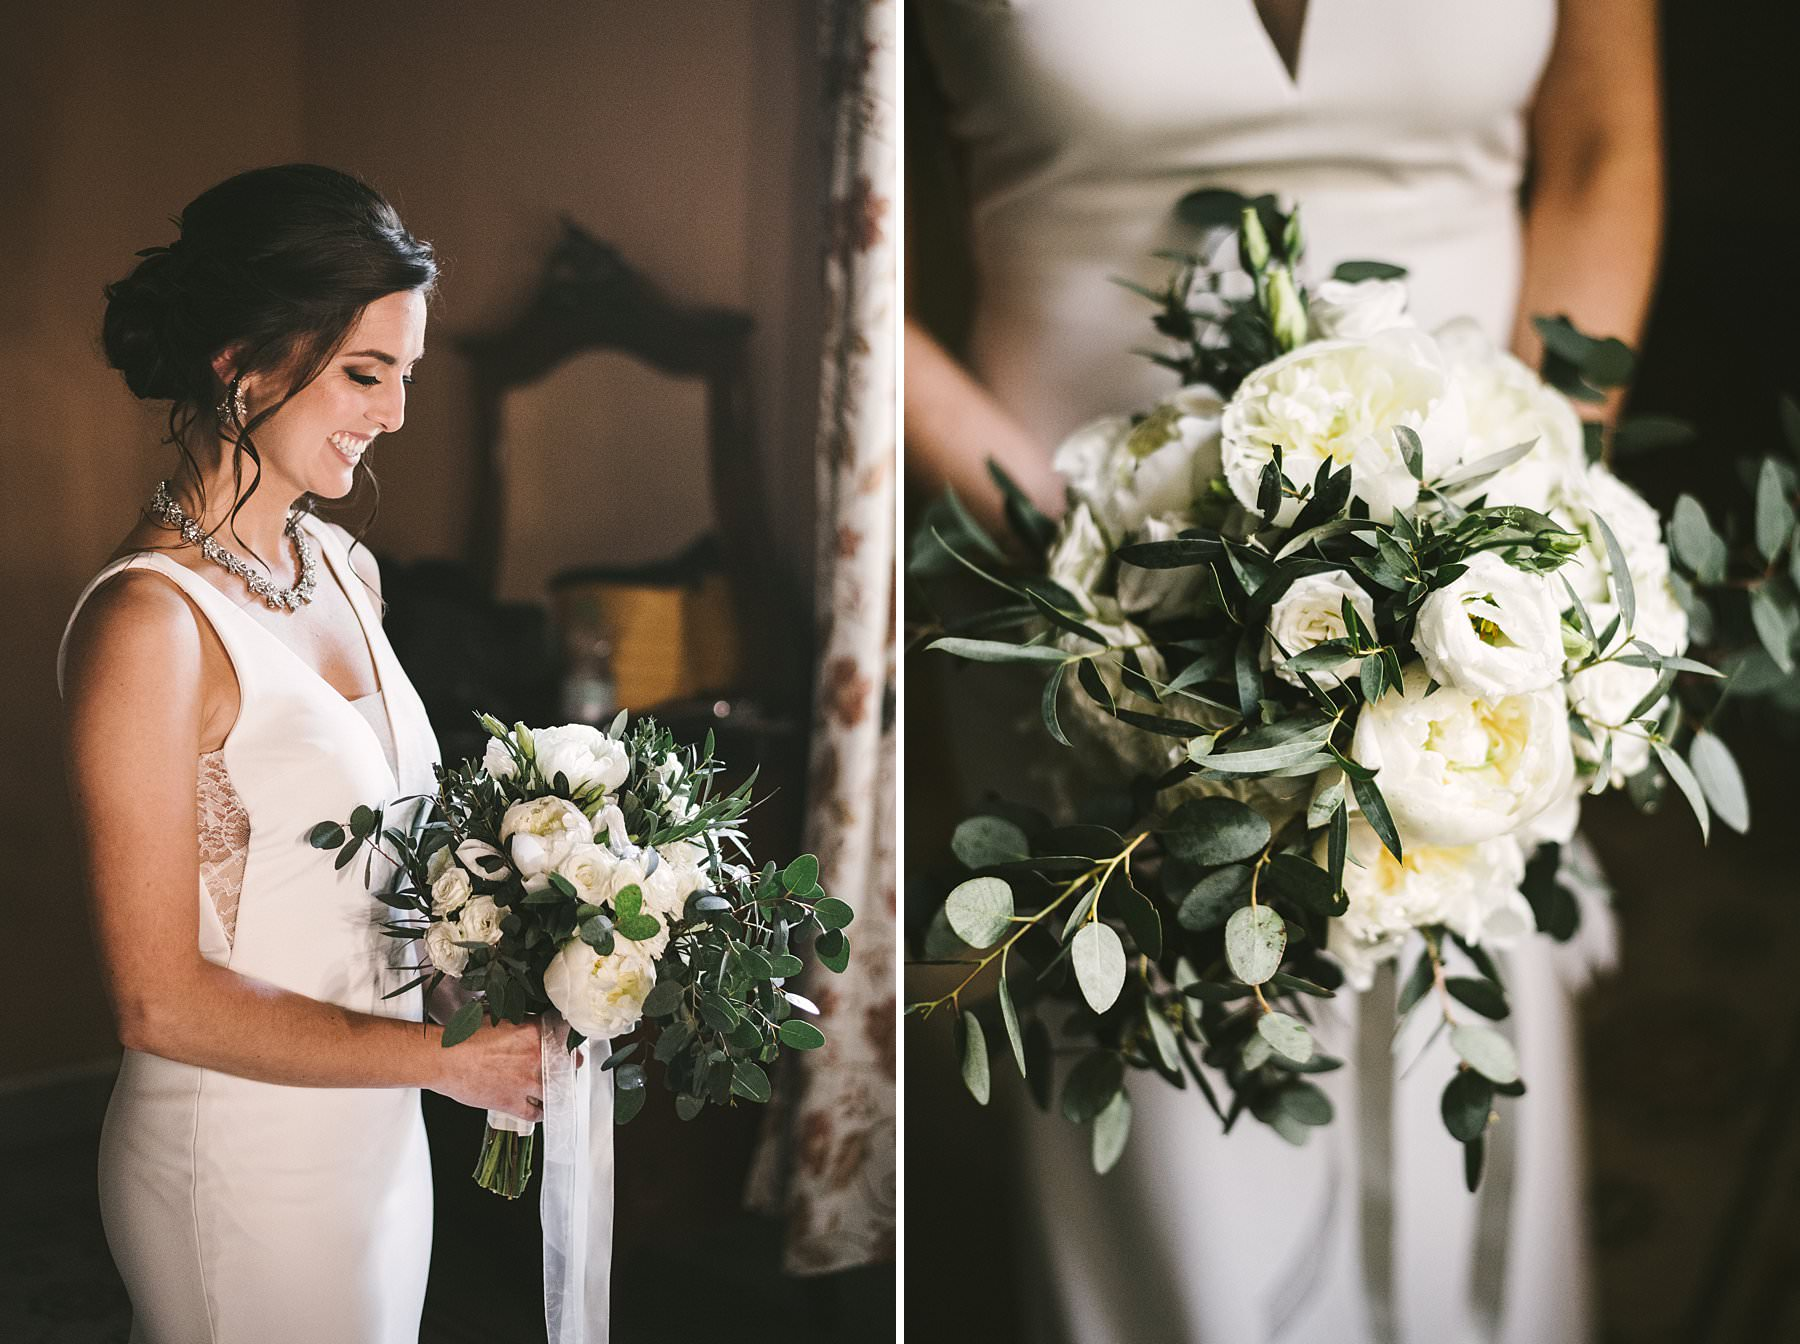 Lovely bride Katrina almost ready to walks down the aisle. Intimate destination wedding in Valdarno, Tuscany at Palazzo Vanneschi in Bucine